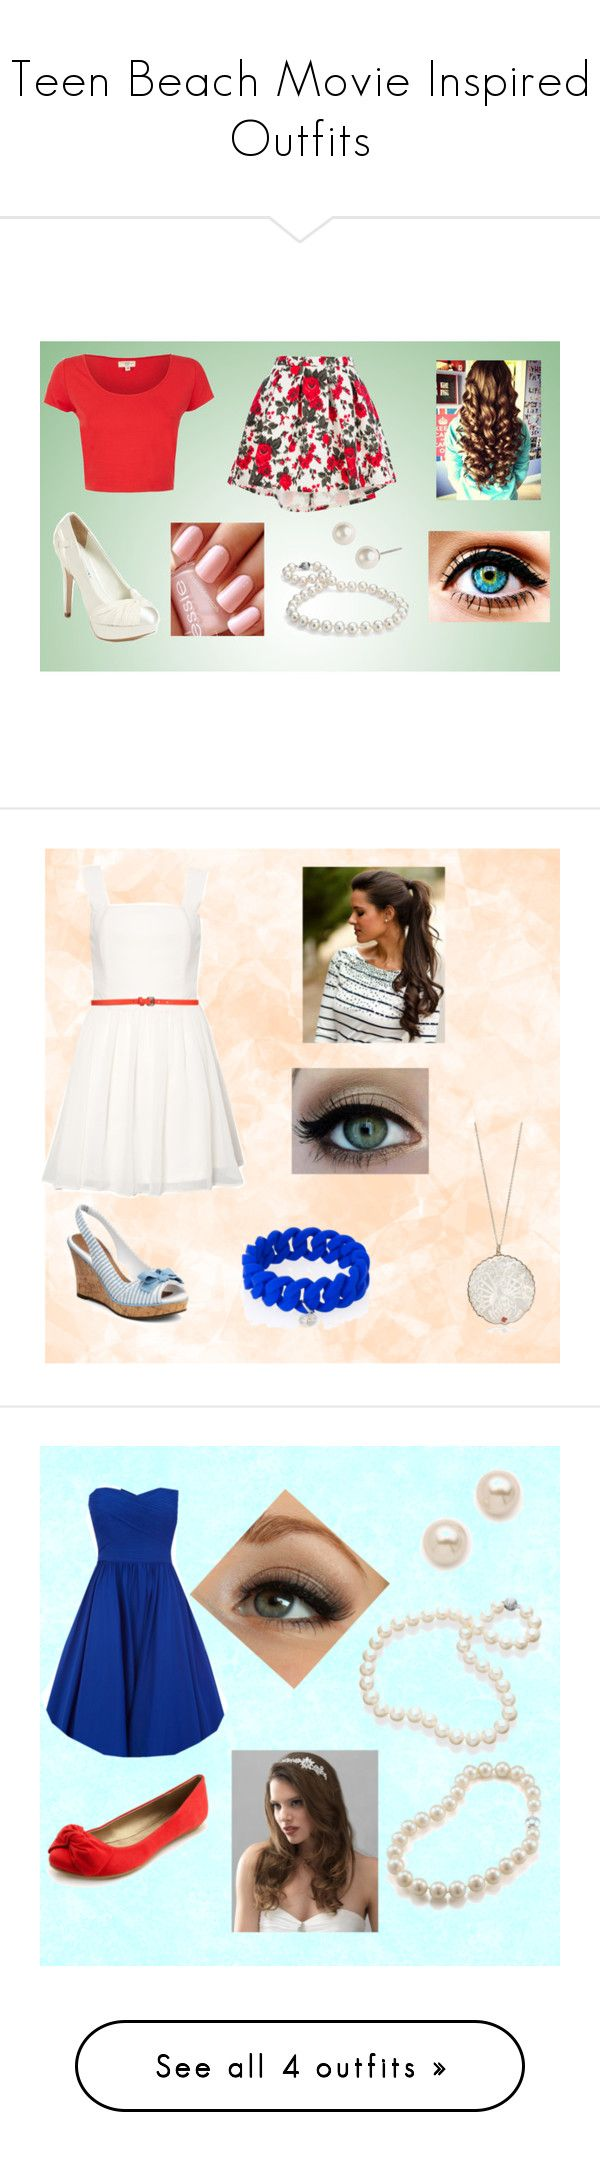 """""""Teen Beach Movie Inspired Outfits"""" by analisa-tapia ❤ liked on Polyvore featuring MSGM, David Tutera, Blue Nile, Givenchy, Essie, modern, Sperry, Rare London, COSTUME NATIONAL and Marc by Marc Jacobs"""